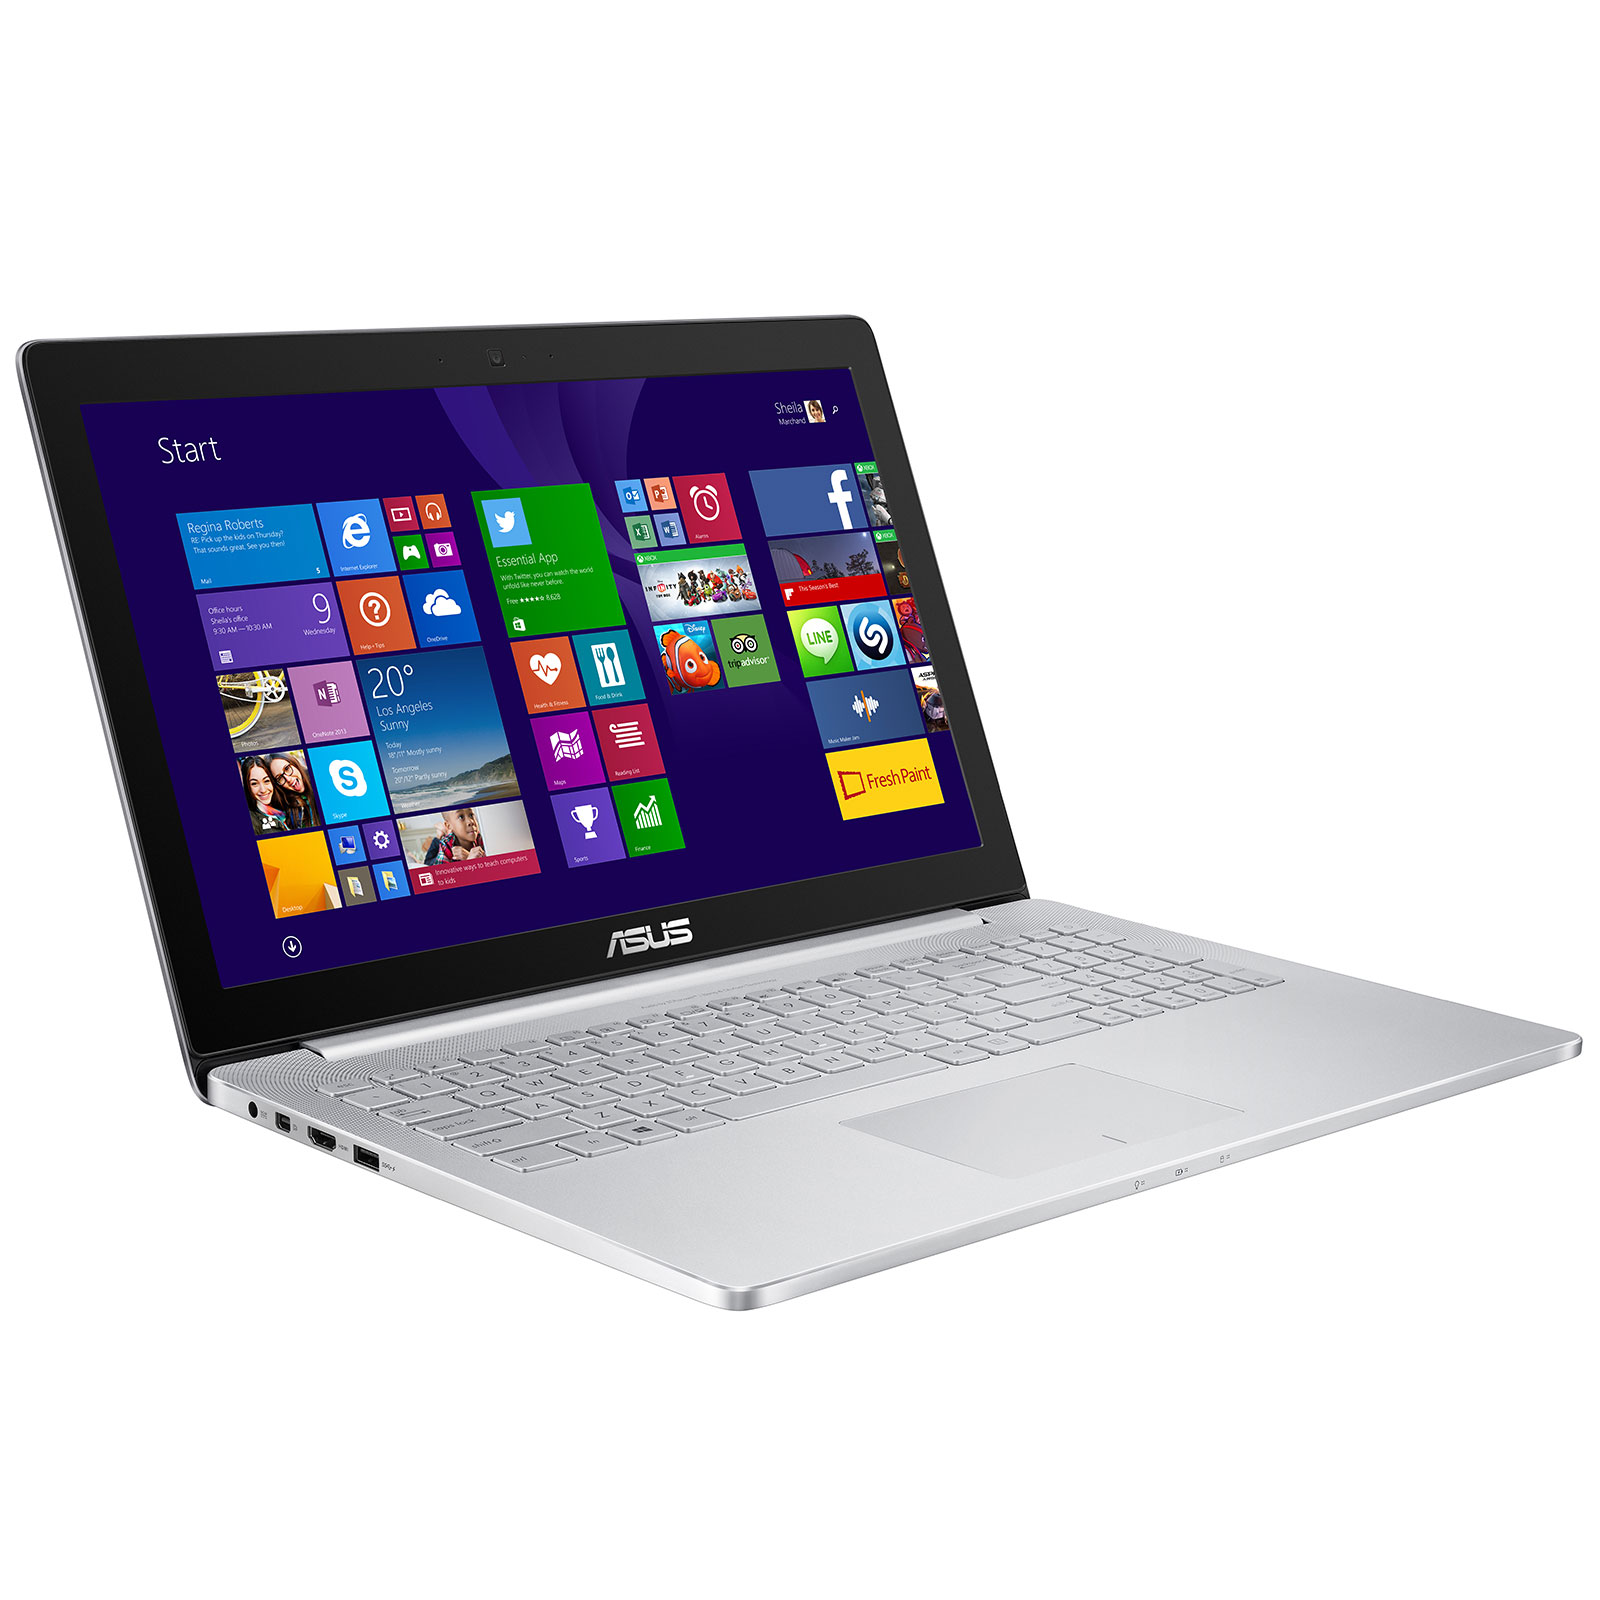 asus zenbook pro ux501jw fi486t pc portable asus sur. Black Bedroom Furniture Sets. Home Design Ideas